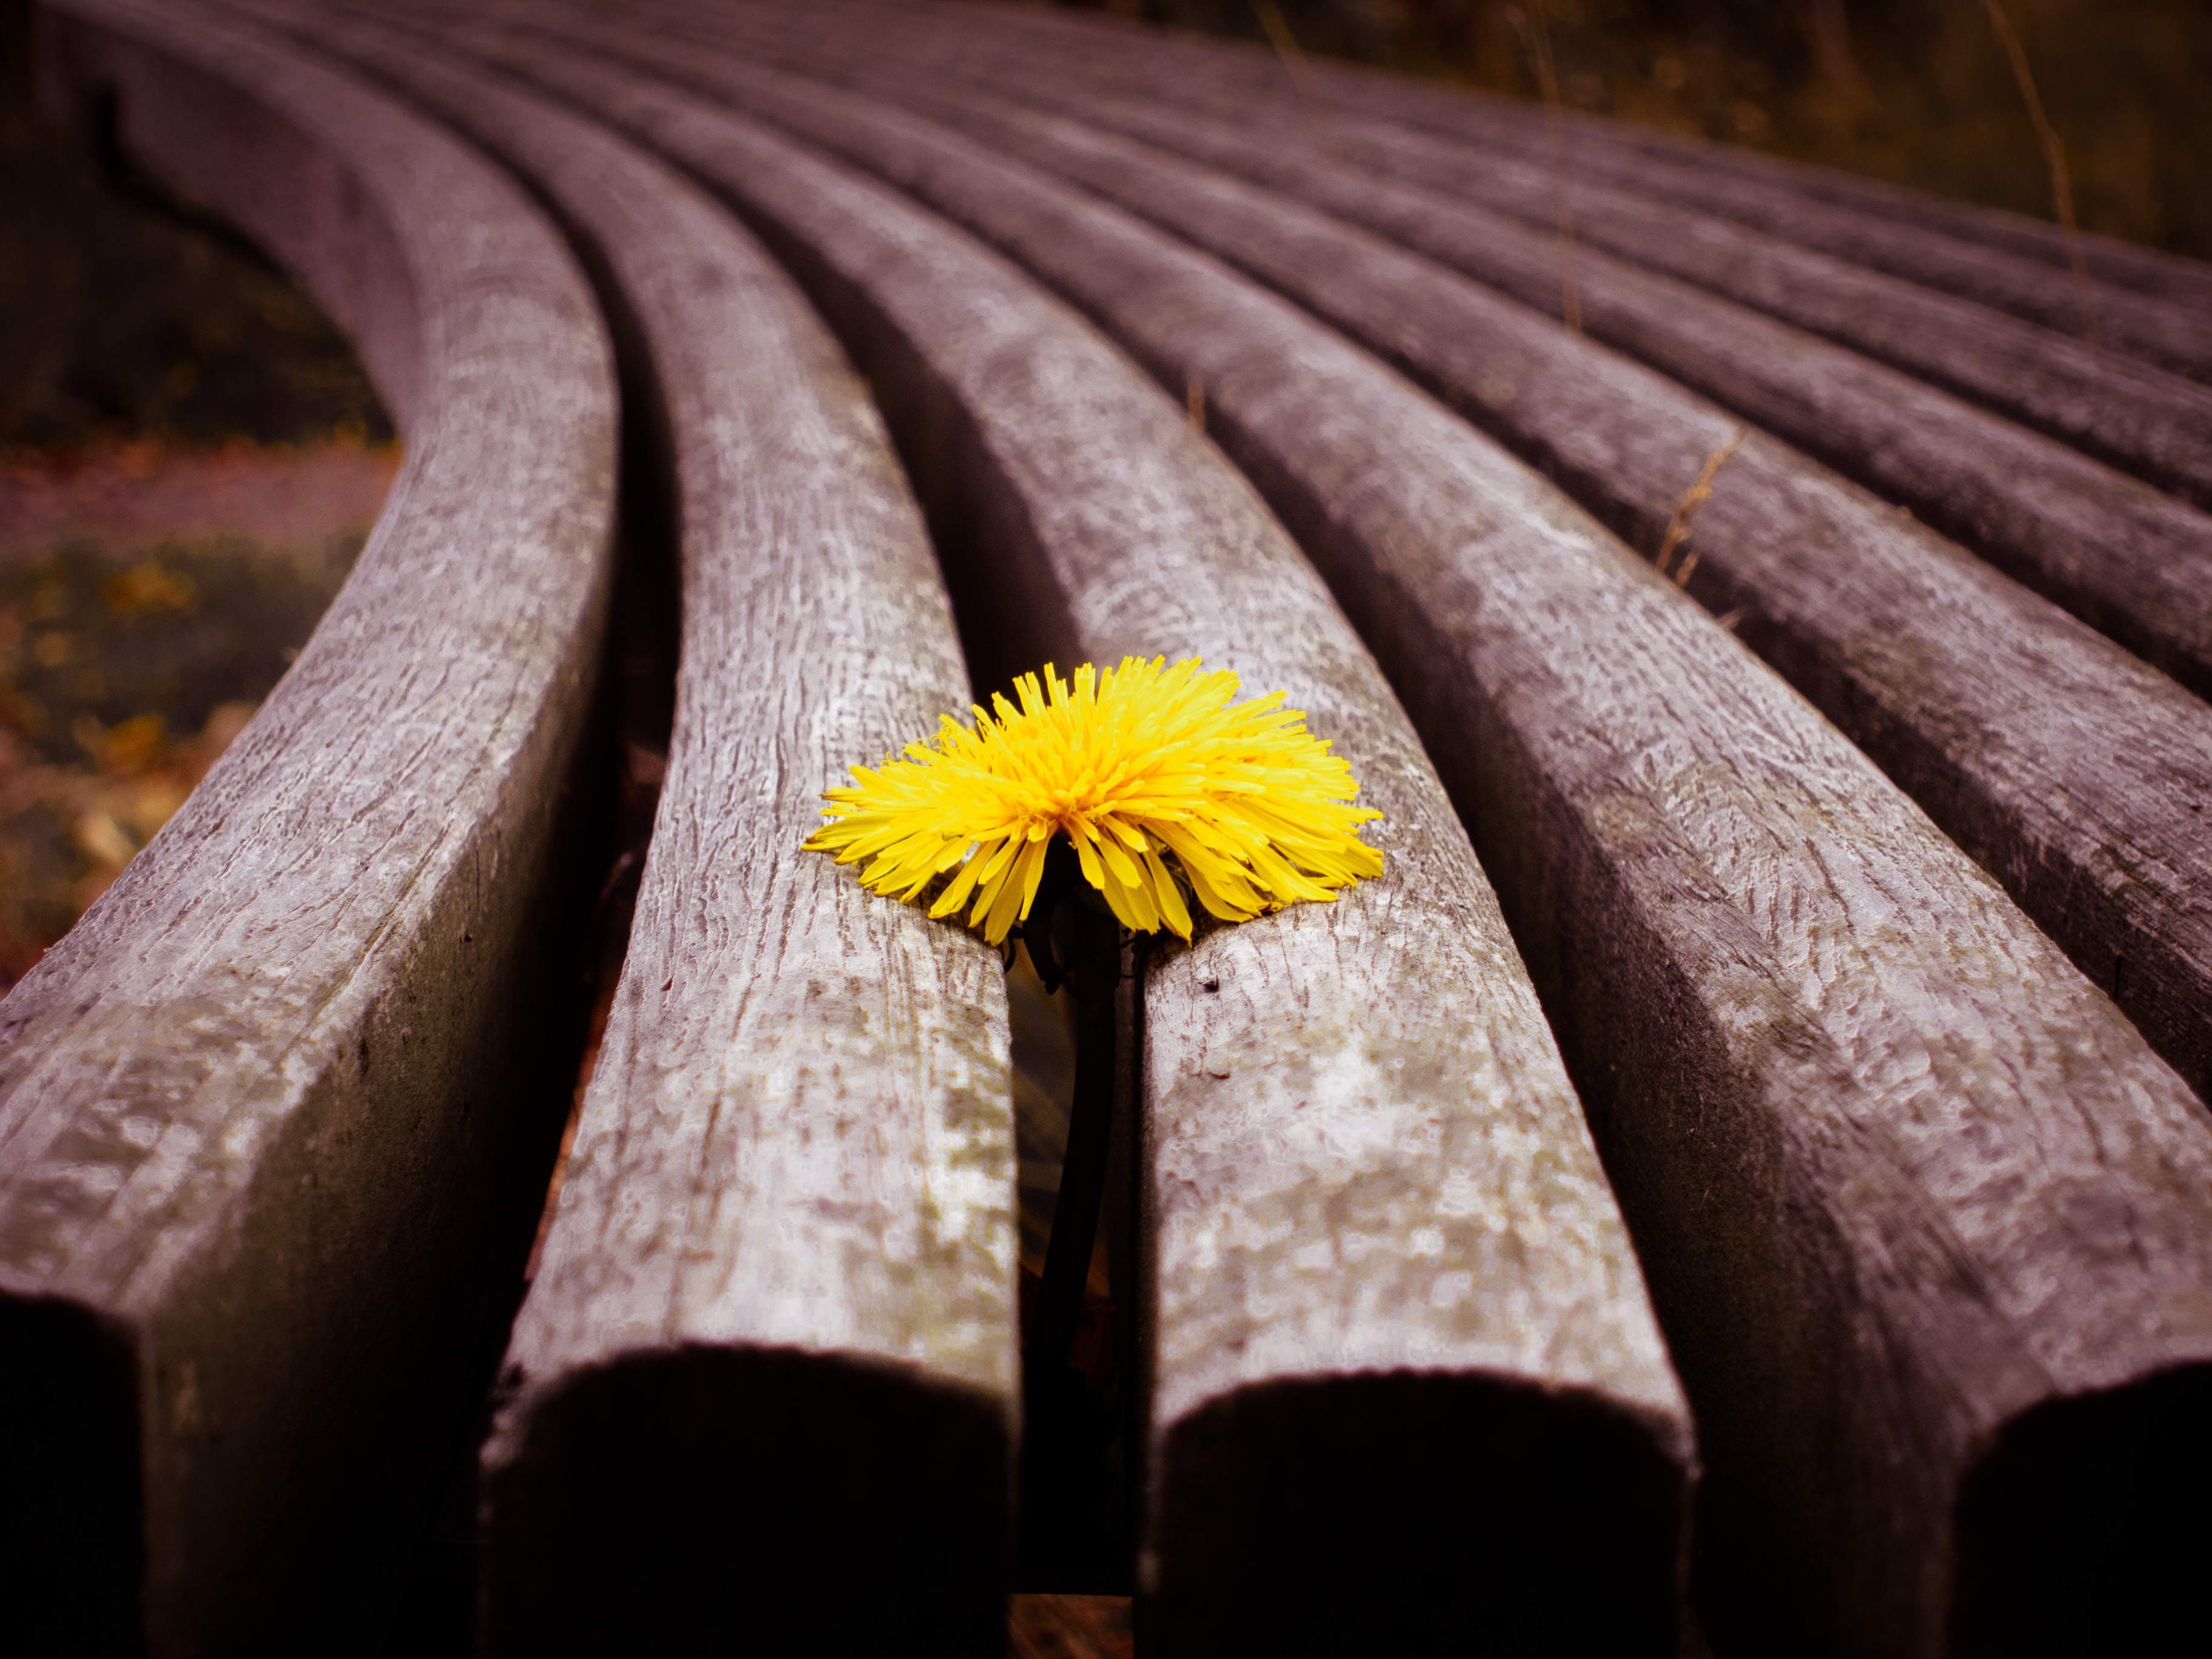 154382 download wallpaper Macro, Planks, Board, Dandelion, Flower screensavers and pictures for free